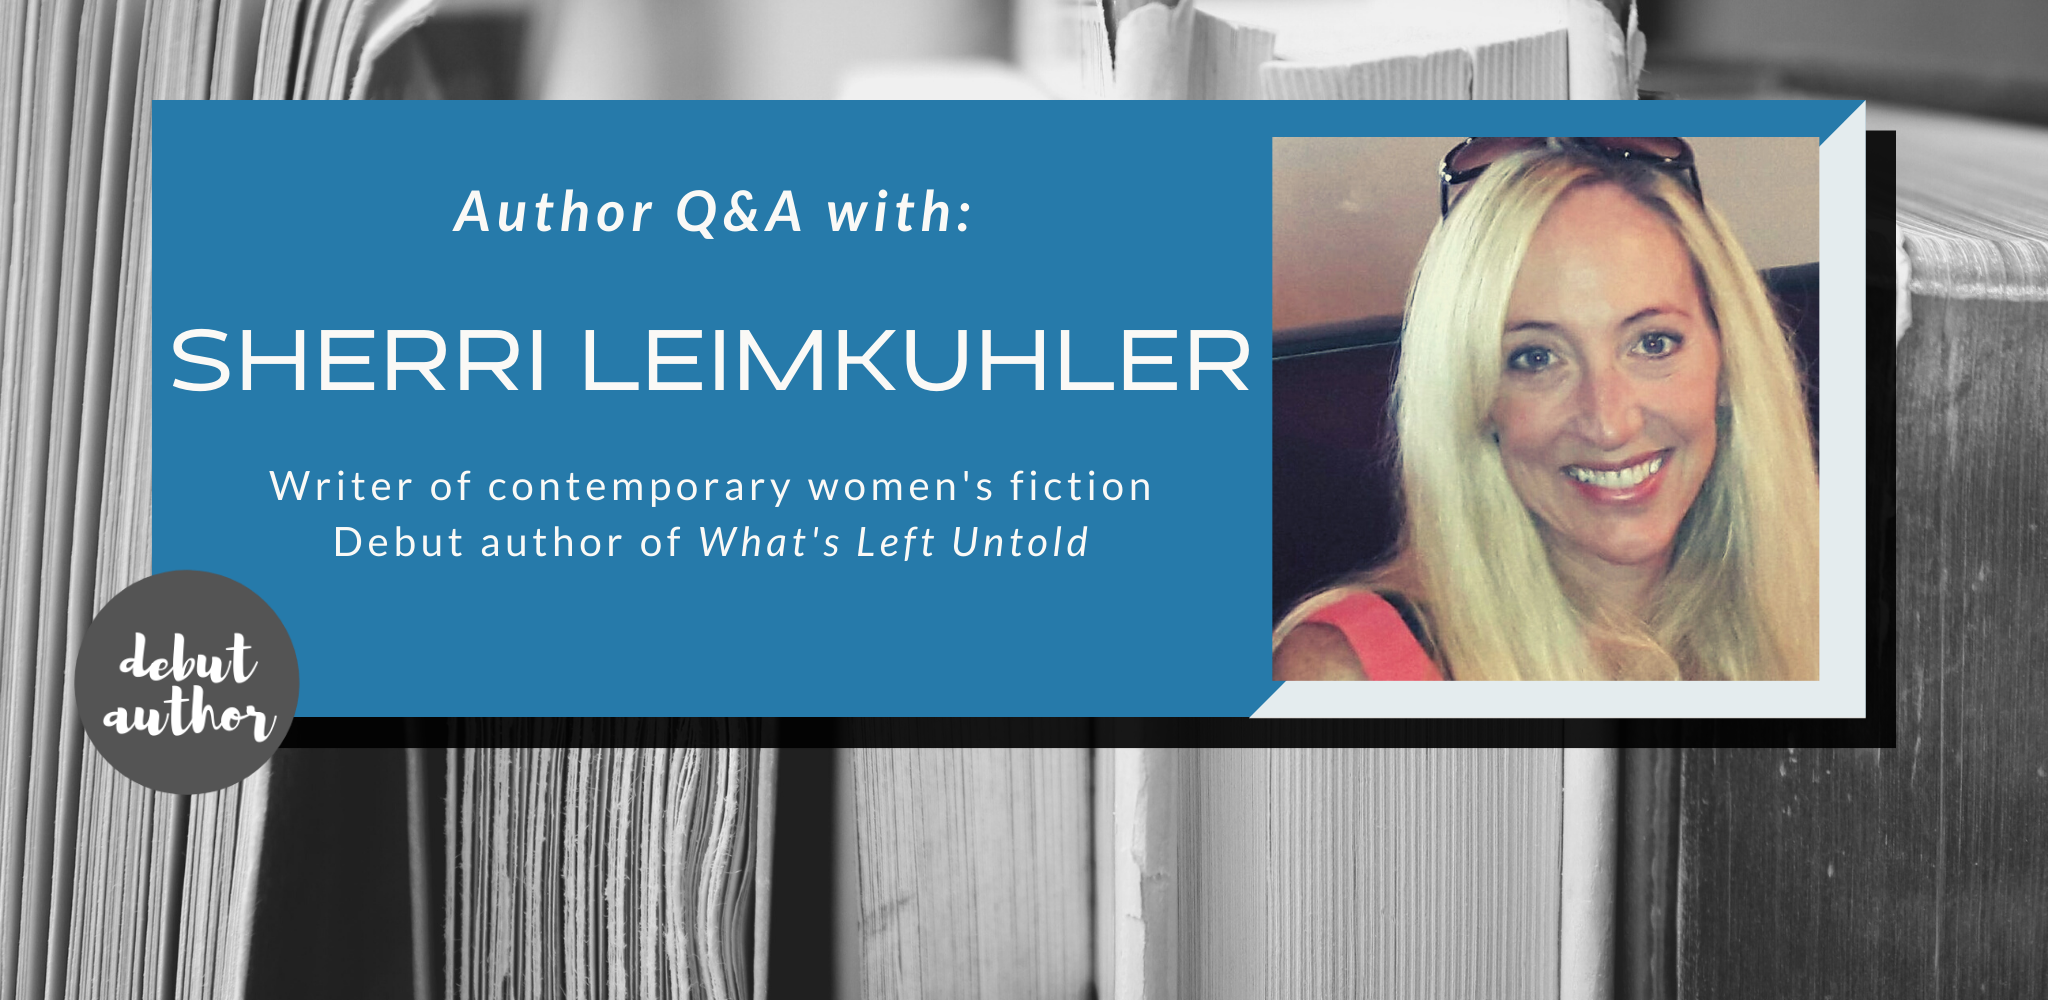 Q&A with Sherri Leimkuhler